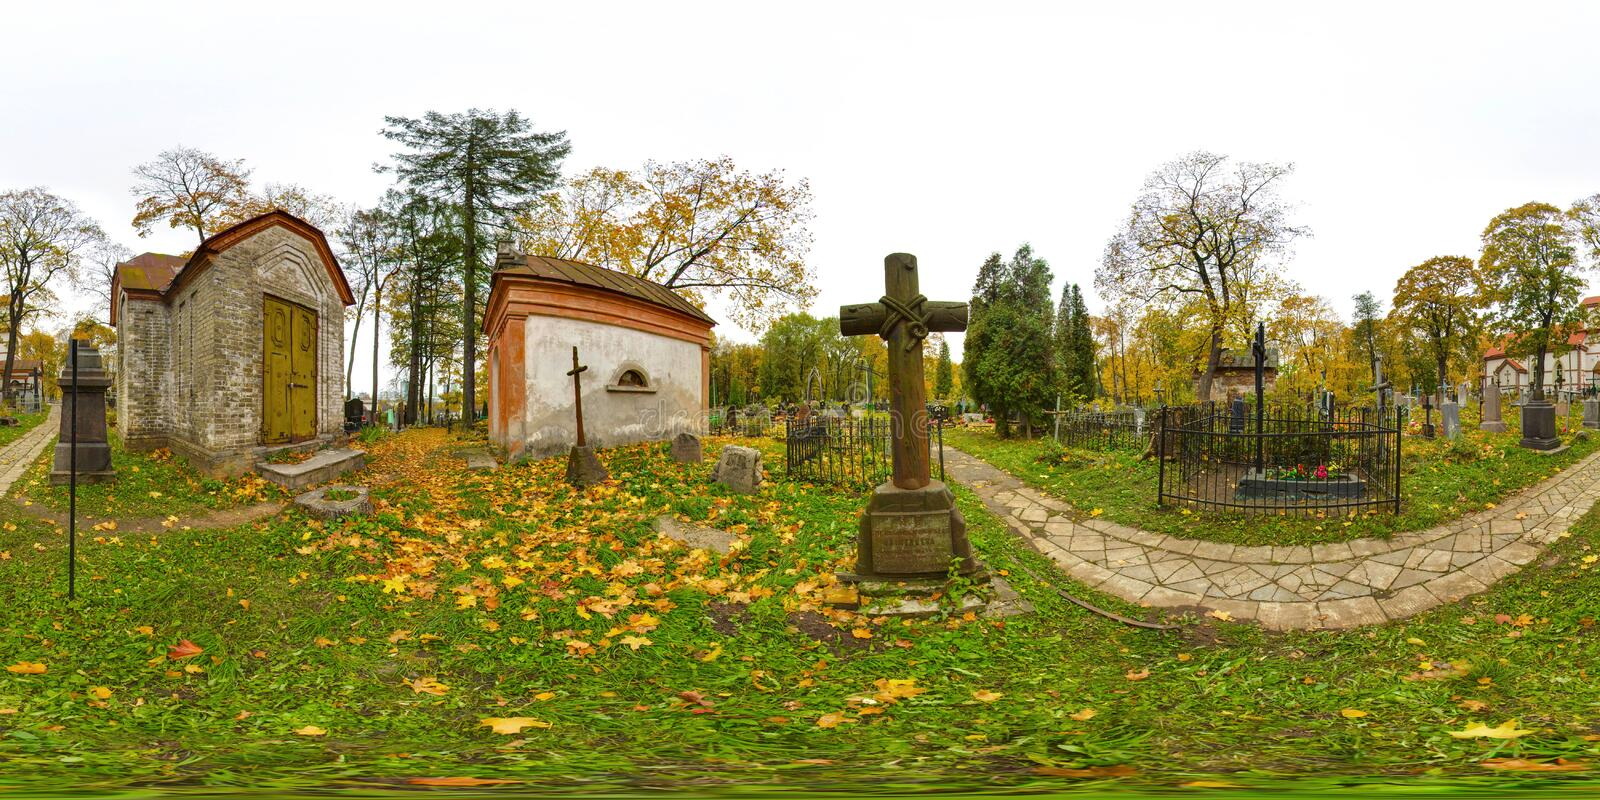 3D spherical panorama with 360 viewing angle. Ready for virtual reality or VR. Full equirectangular projection. Old cemetery. Old stock photography